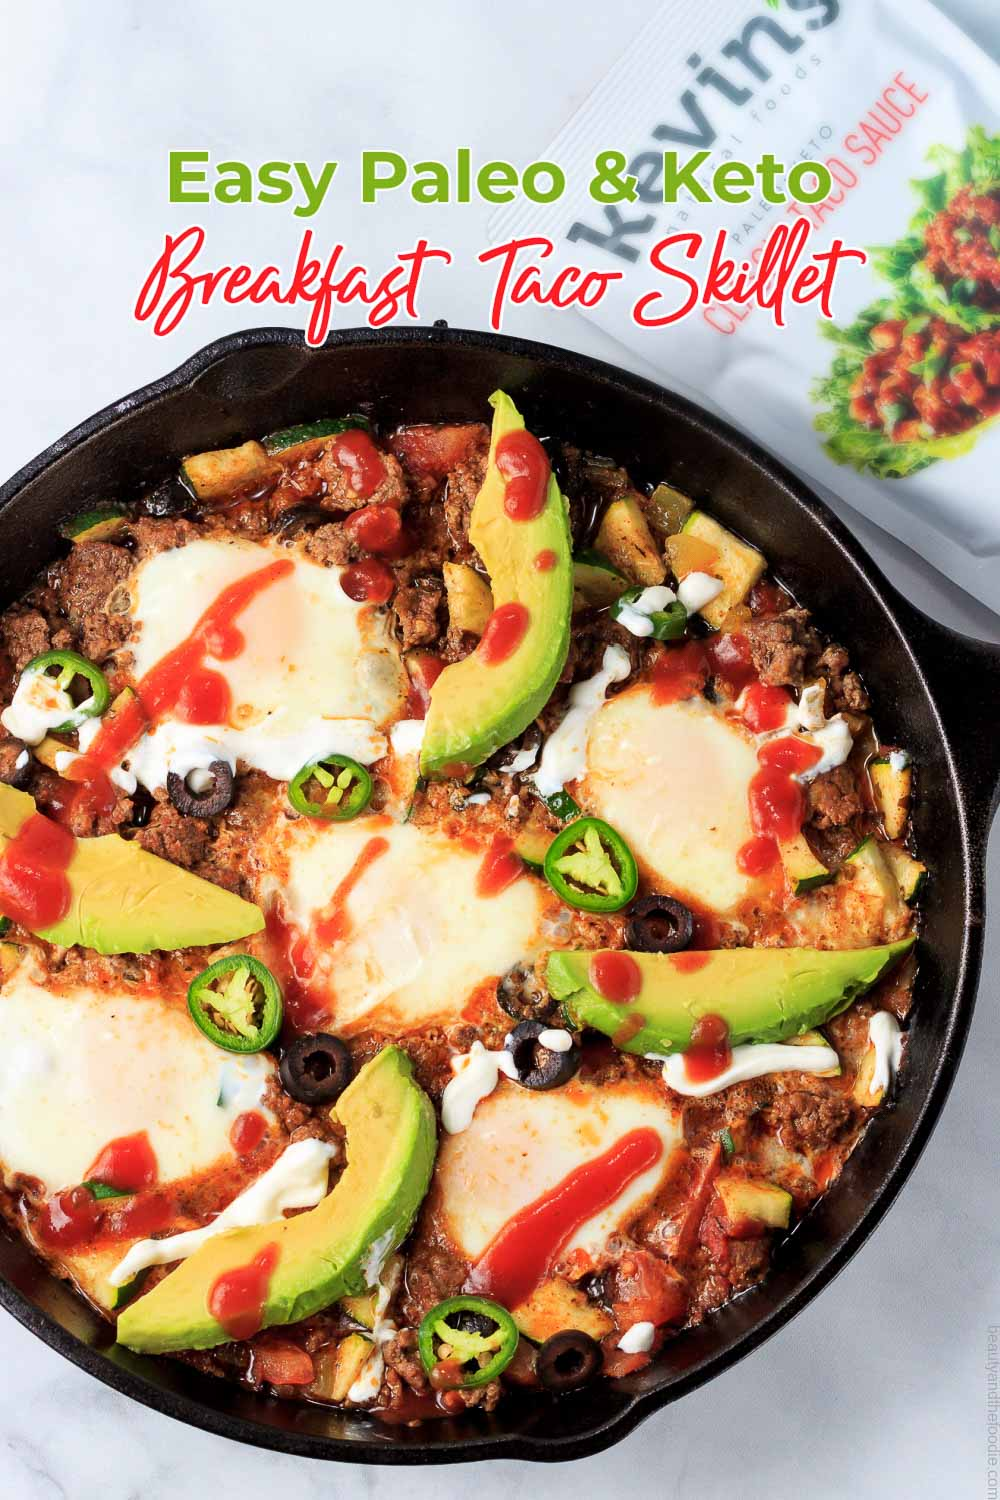 A Mexican breakfast skillet with eggs.